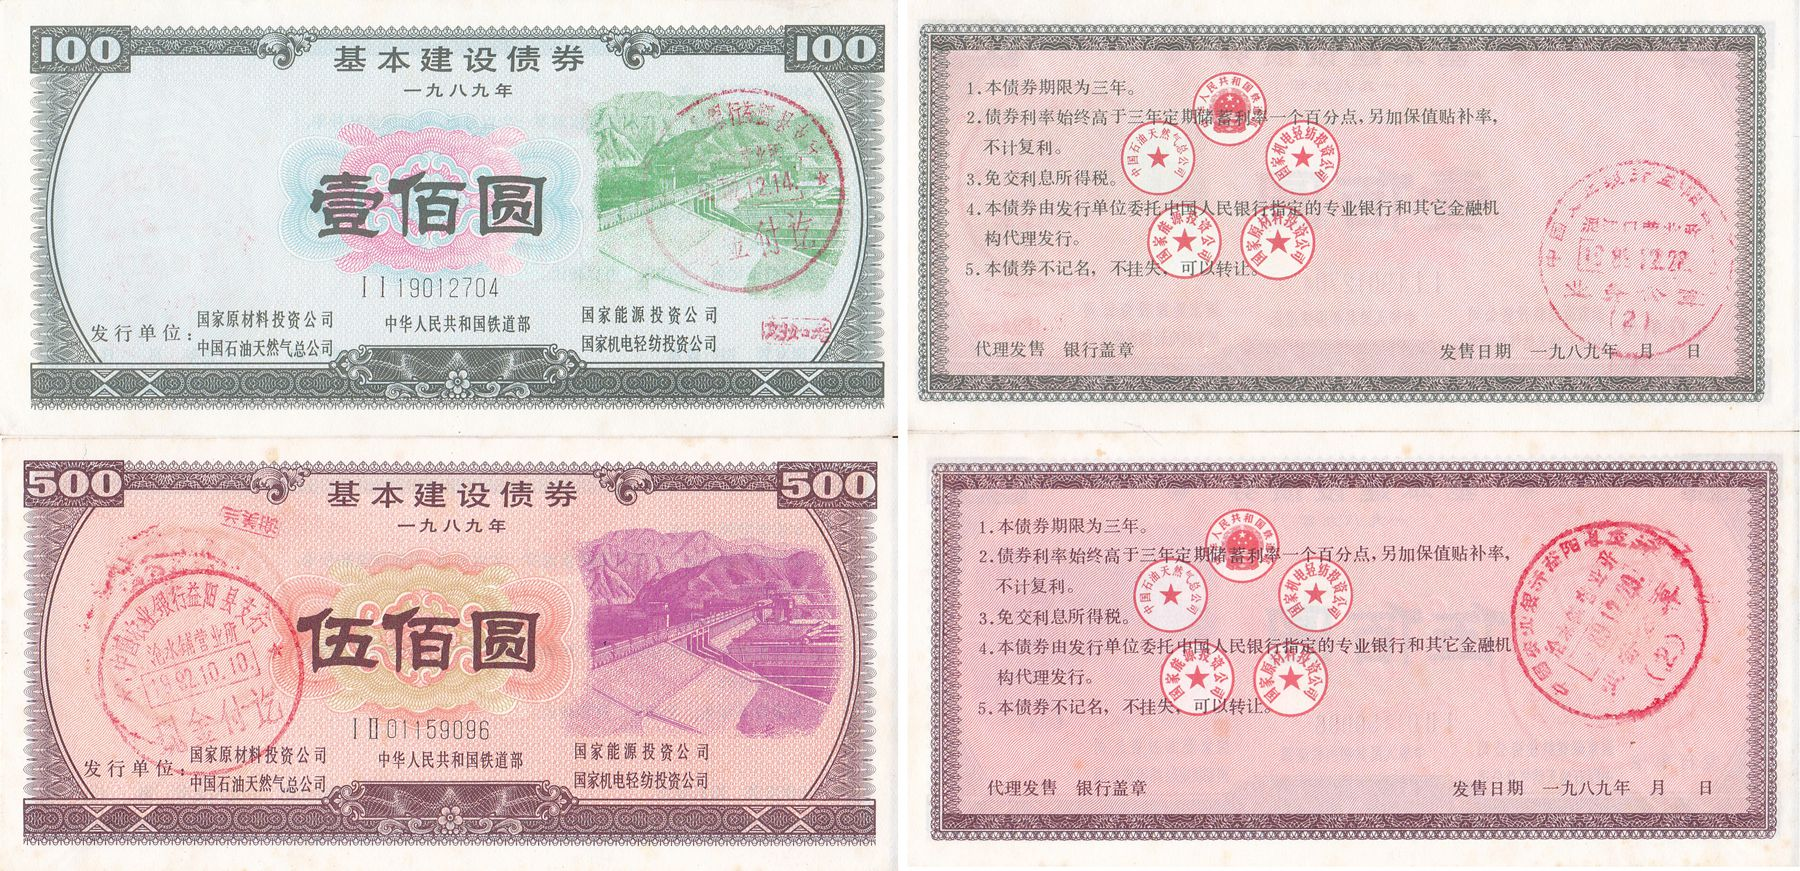 B7305, China Capital Construction Bond, 2 Pcs 1987